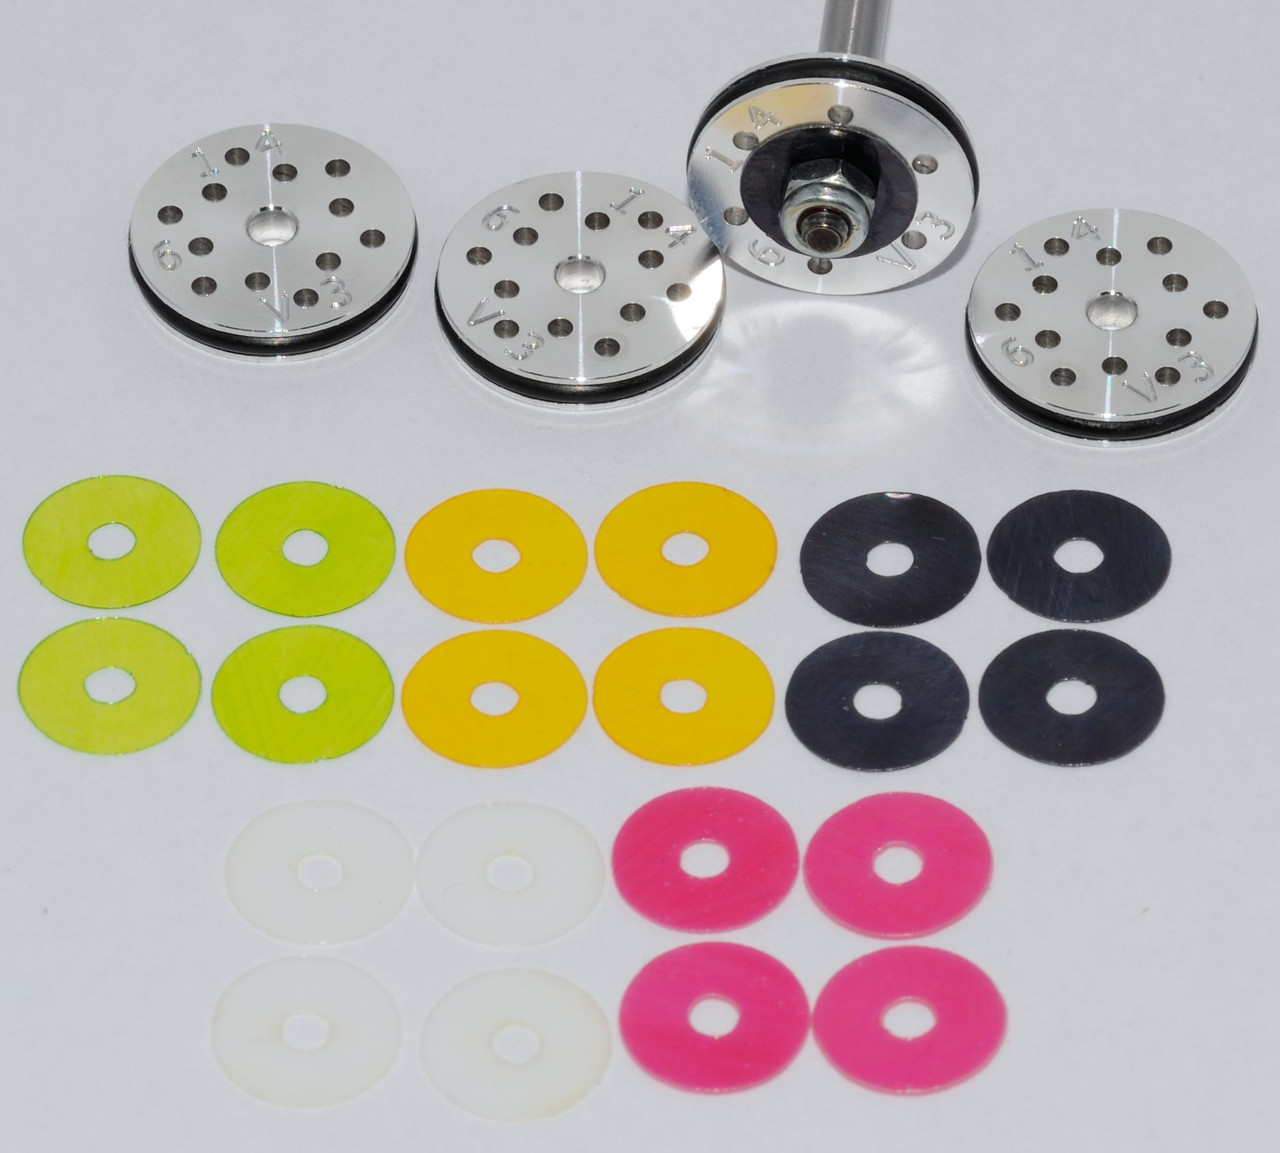 #1 RC Shock Rebound Valved Pistons 16mm, 6 hole, 1.4mm. Losi 8ight, HB, Serpent 2.0